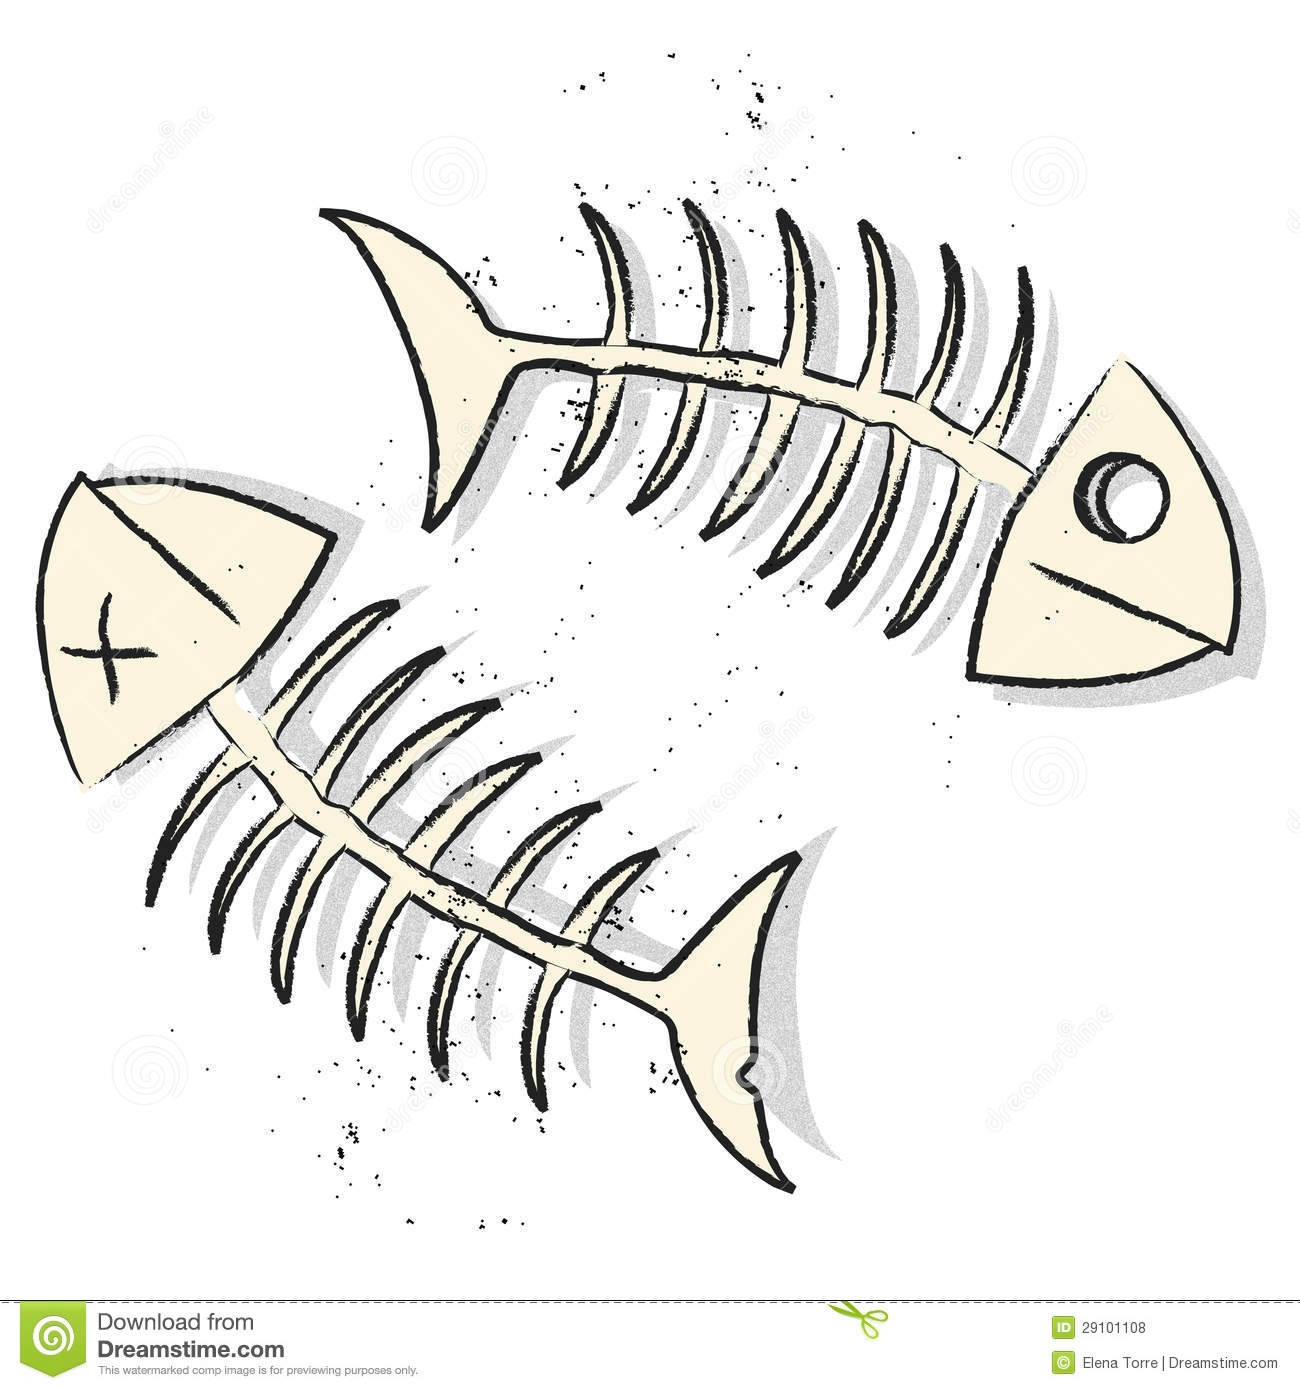 Fishbones Vector Royalty Free Stock Photos - Image: 29101108